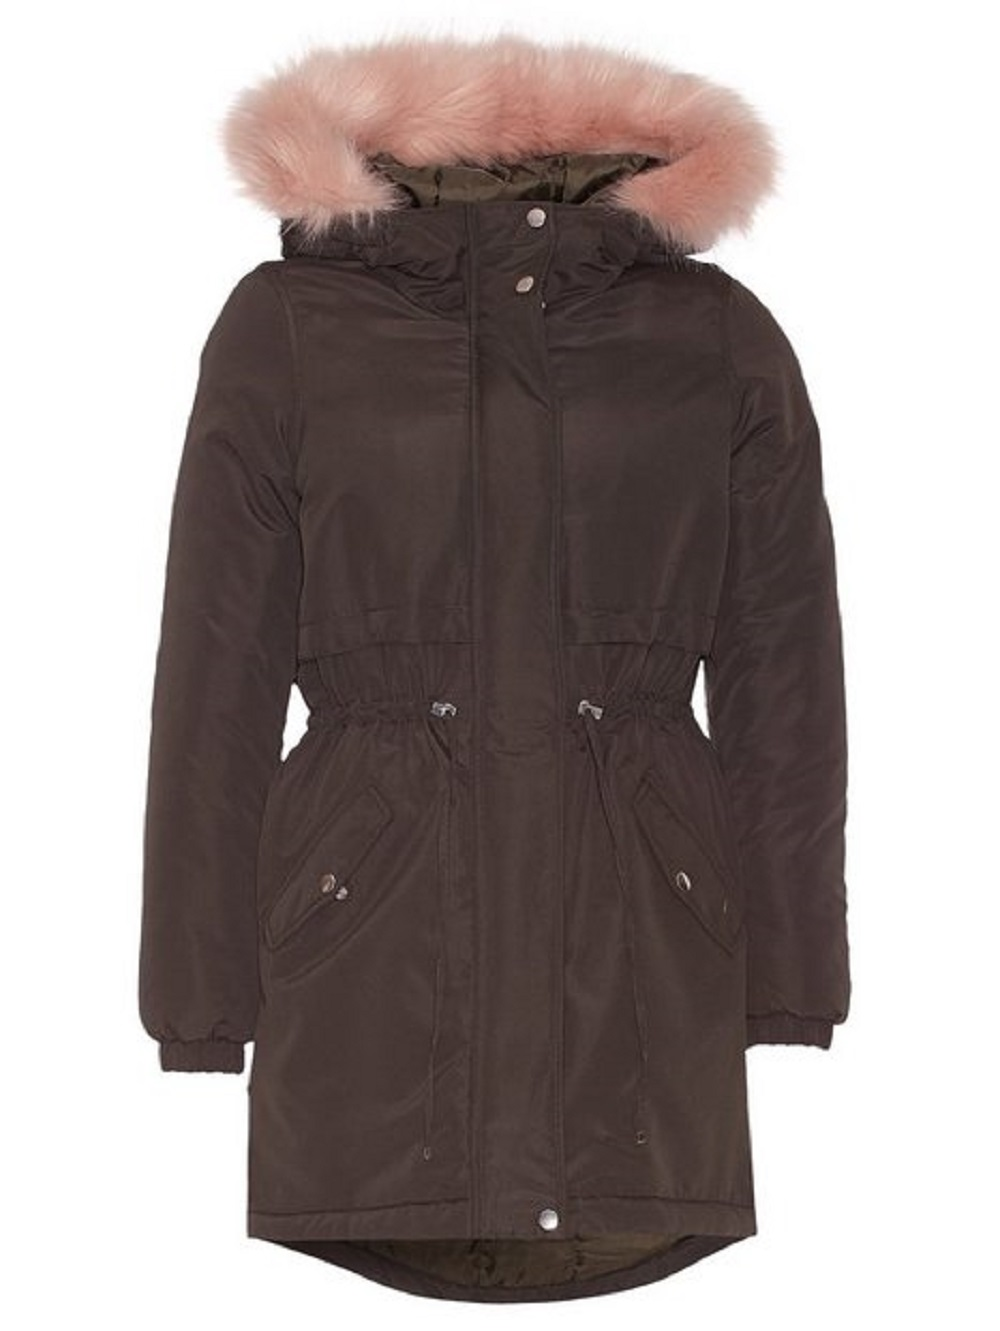 Vero Moda - Women's VMBELLA Winter Hooded Parka